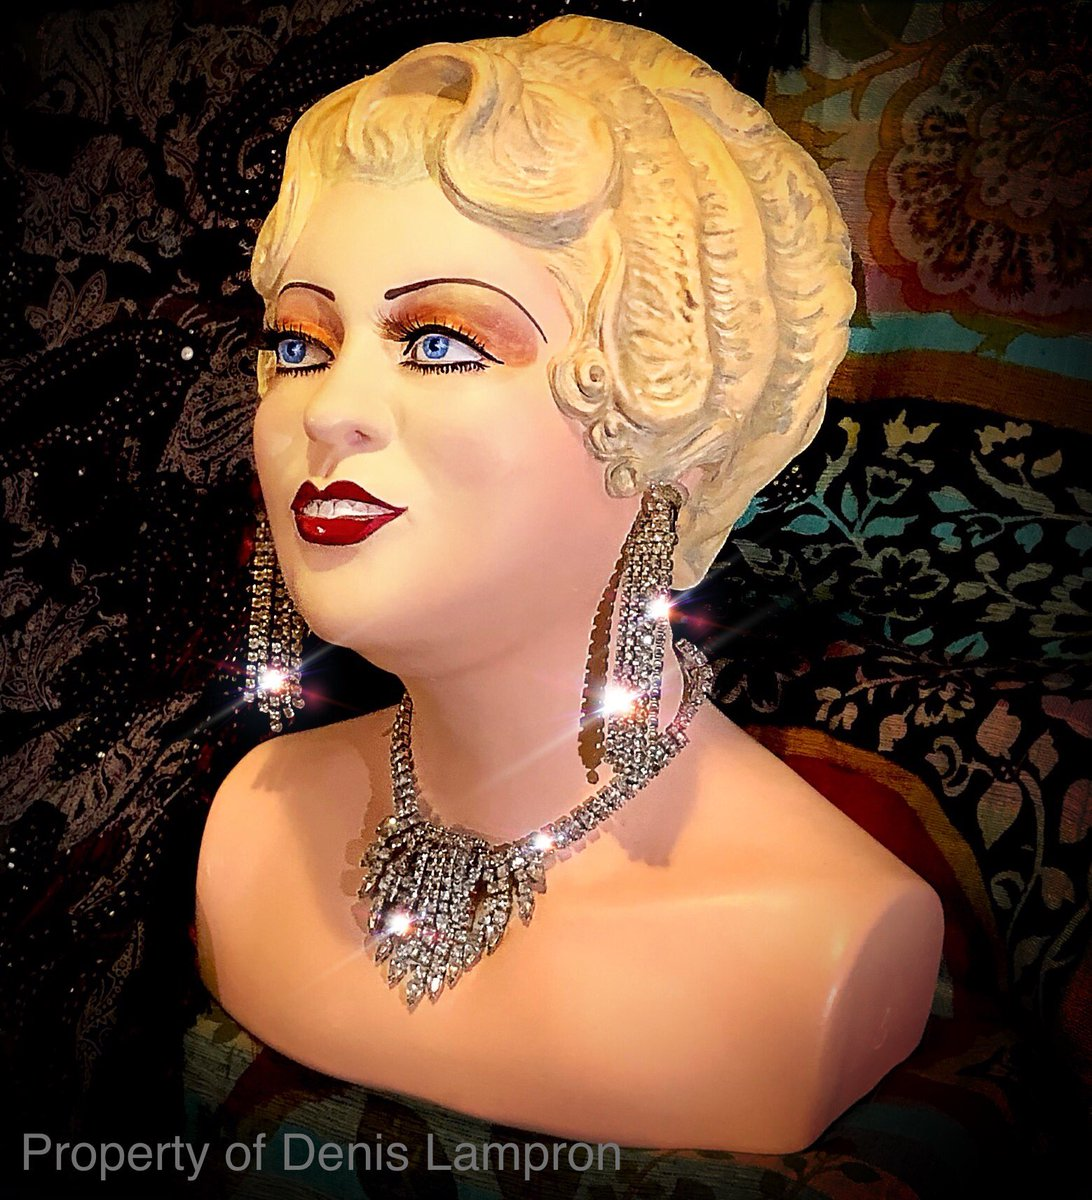 The Bust of Mae West  was on displayed in  Amsterdam in 2012. #MaeWest #Amsterdam pic.twitter.com/55IBDDmtsX